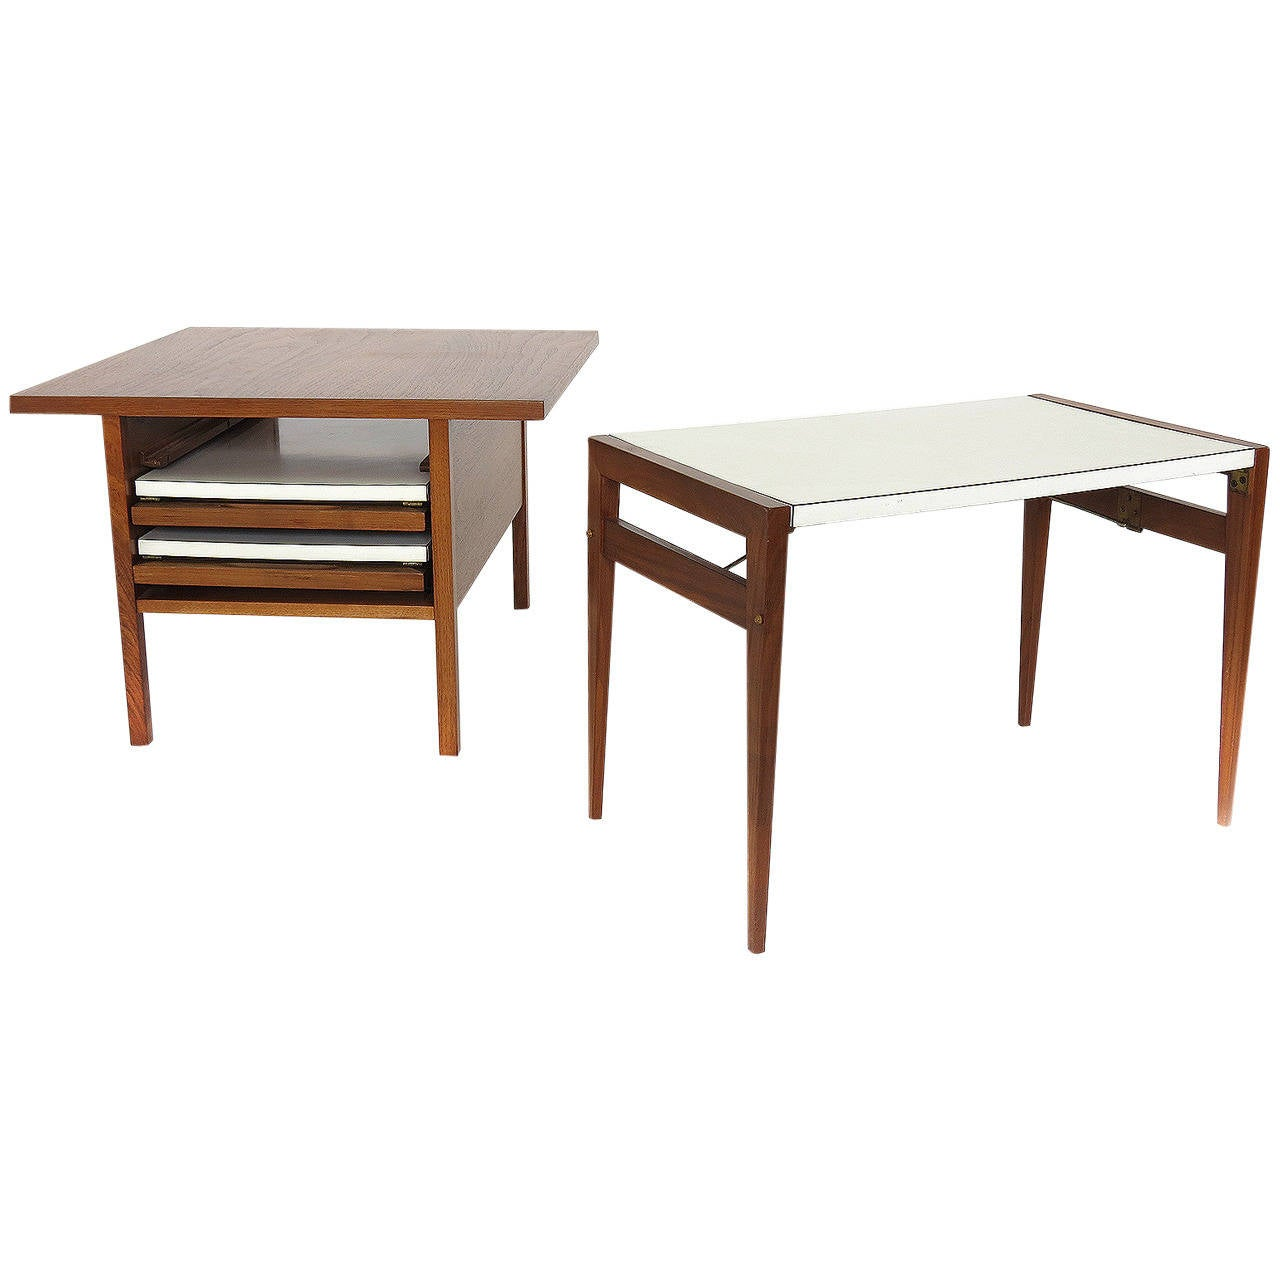 John keal coffee table with folding side tables at 1stdibs Folding coffee table